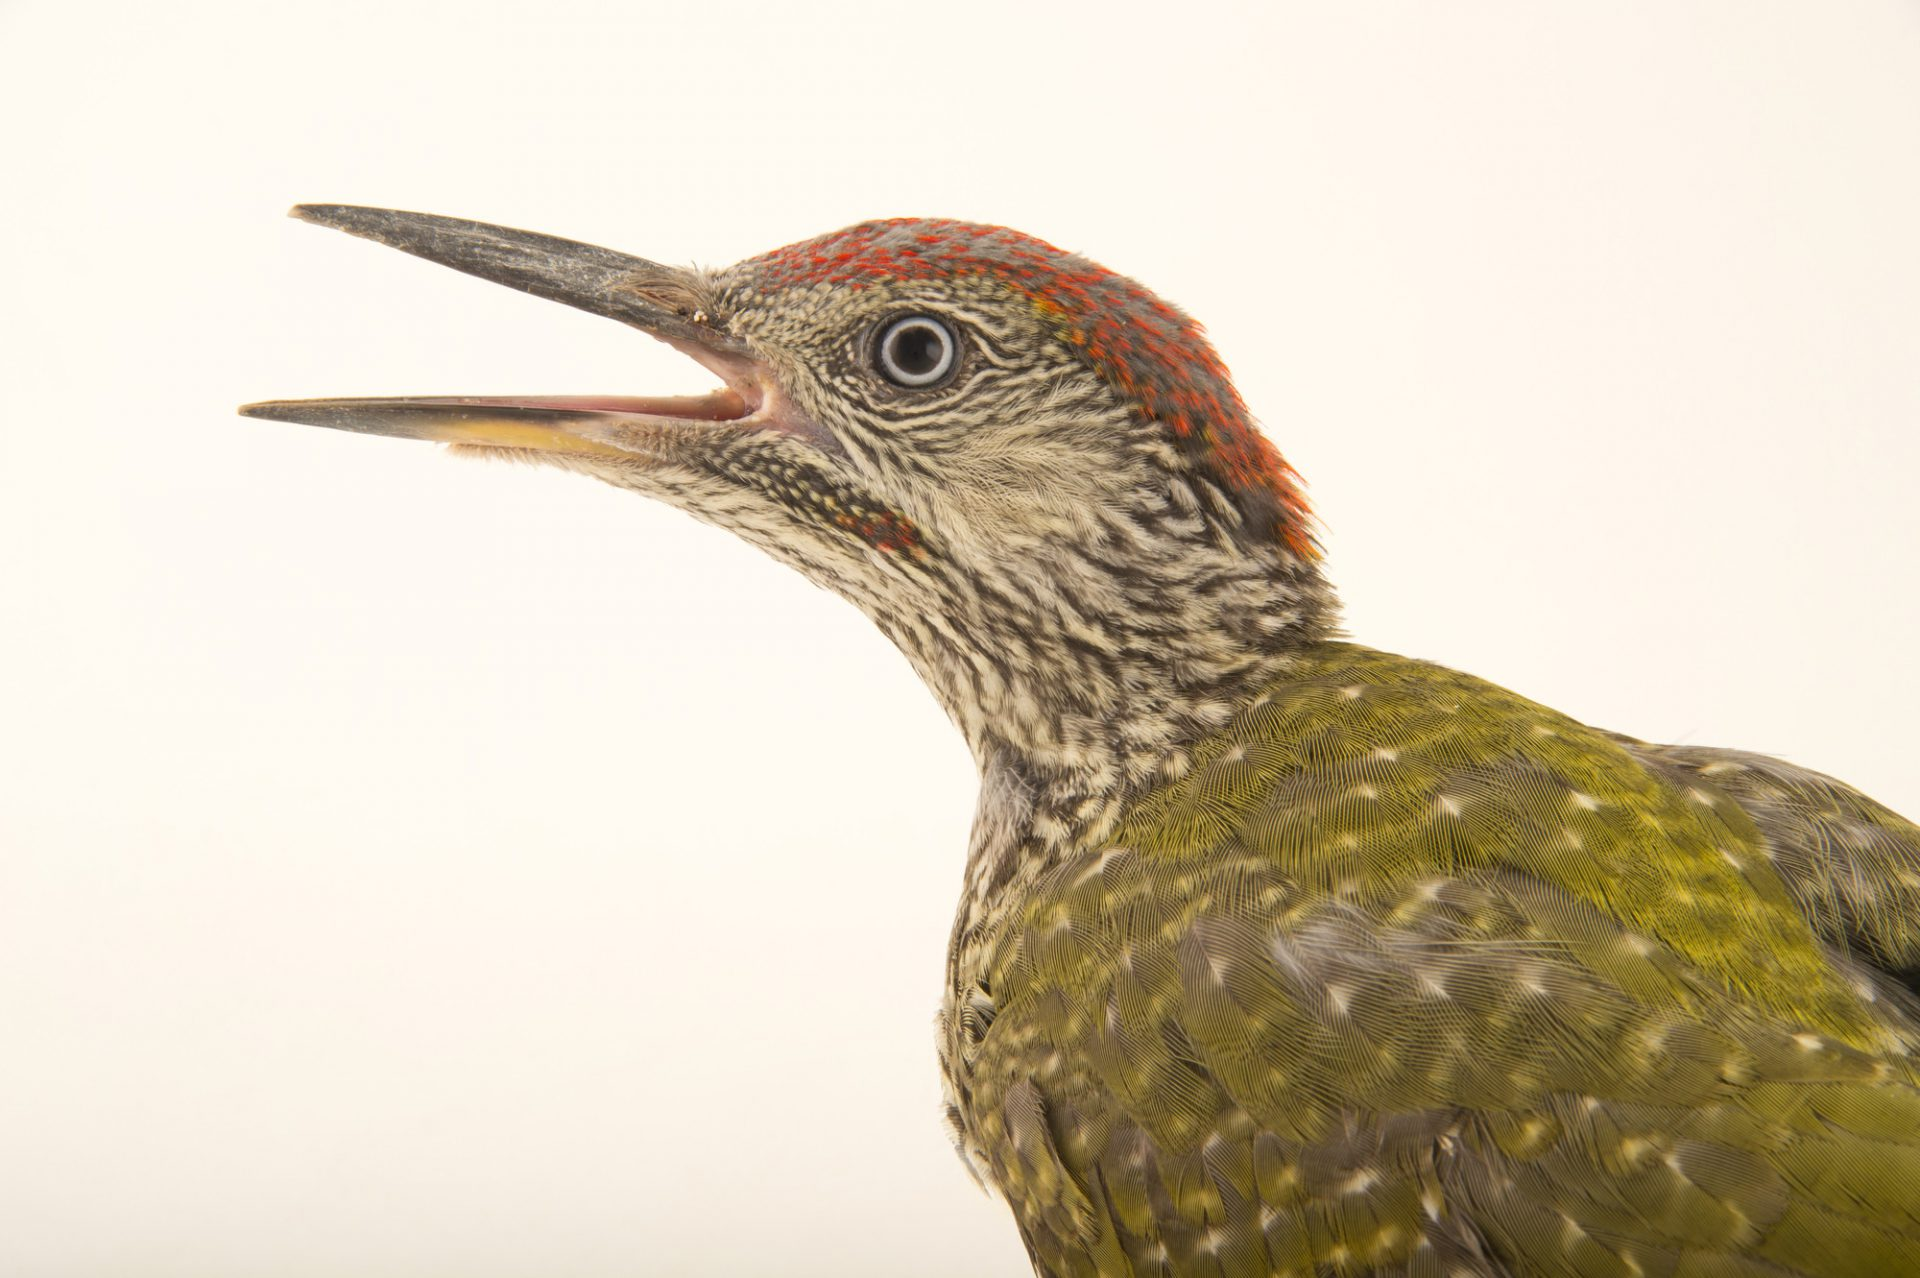 Photo: A young European green woodpecker (Picus viridis) from the Budapest Zoo.